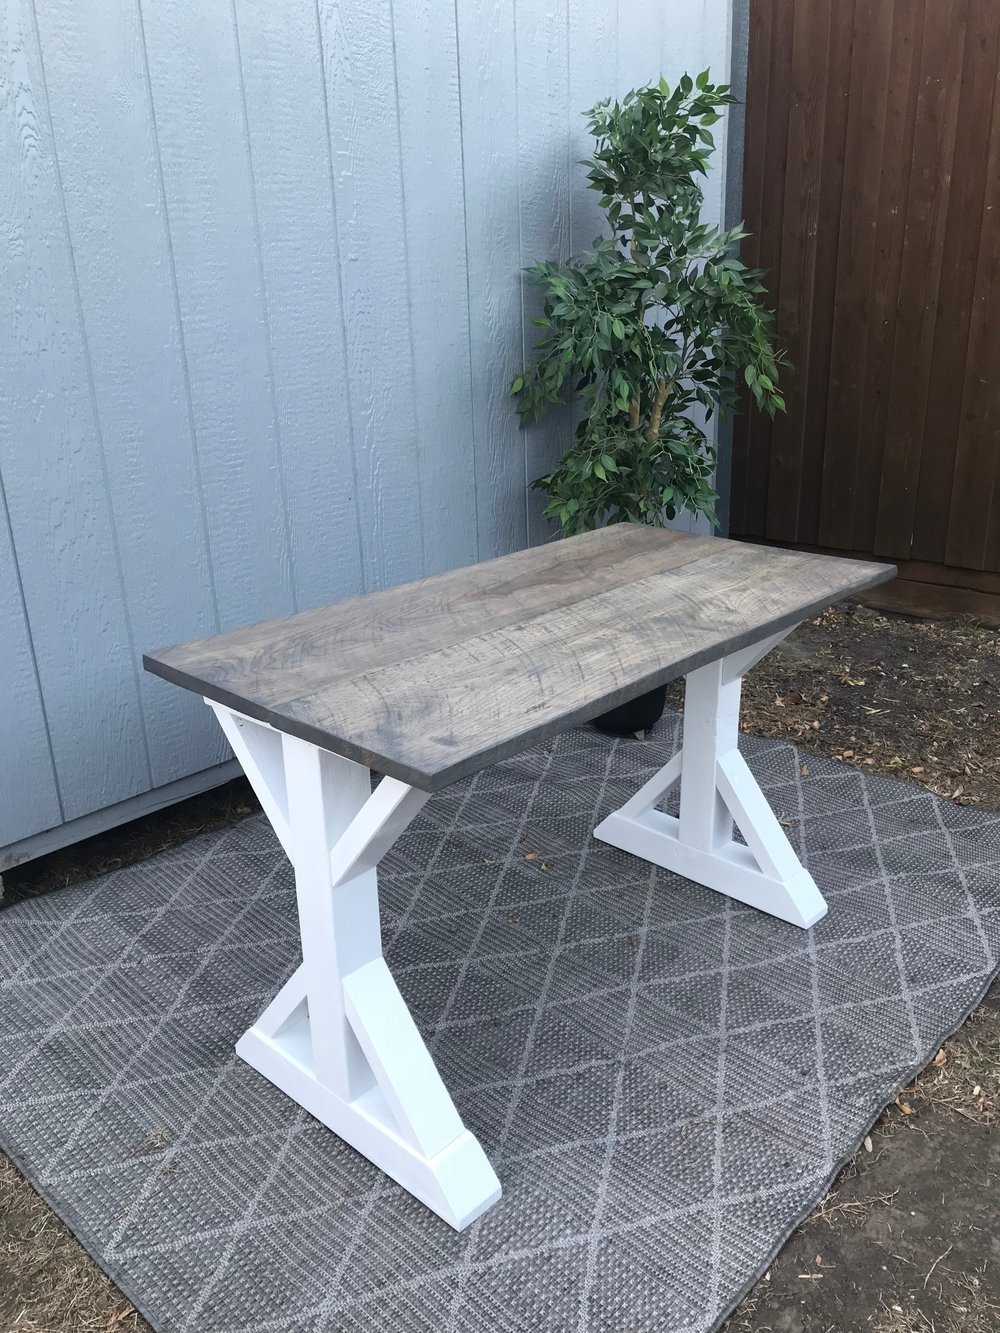 wood: PECAN/ stain: classic gray